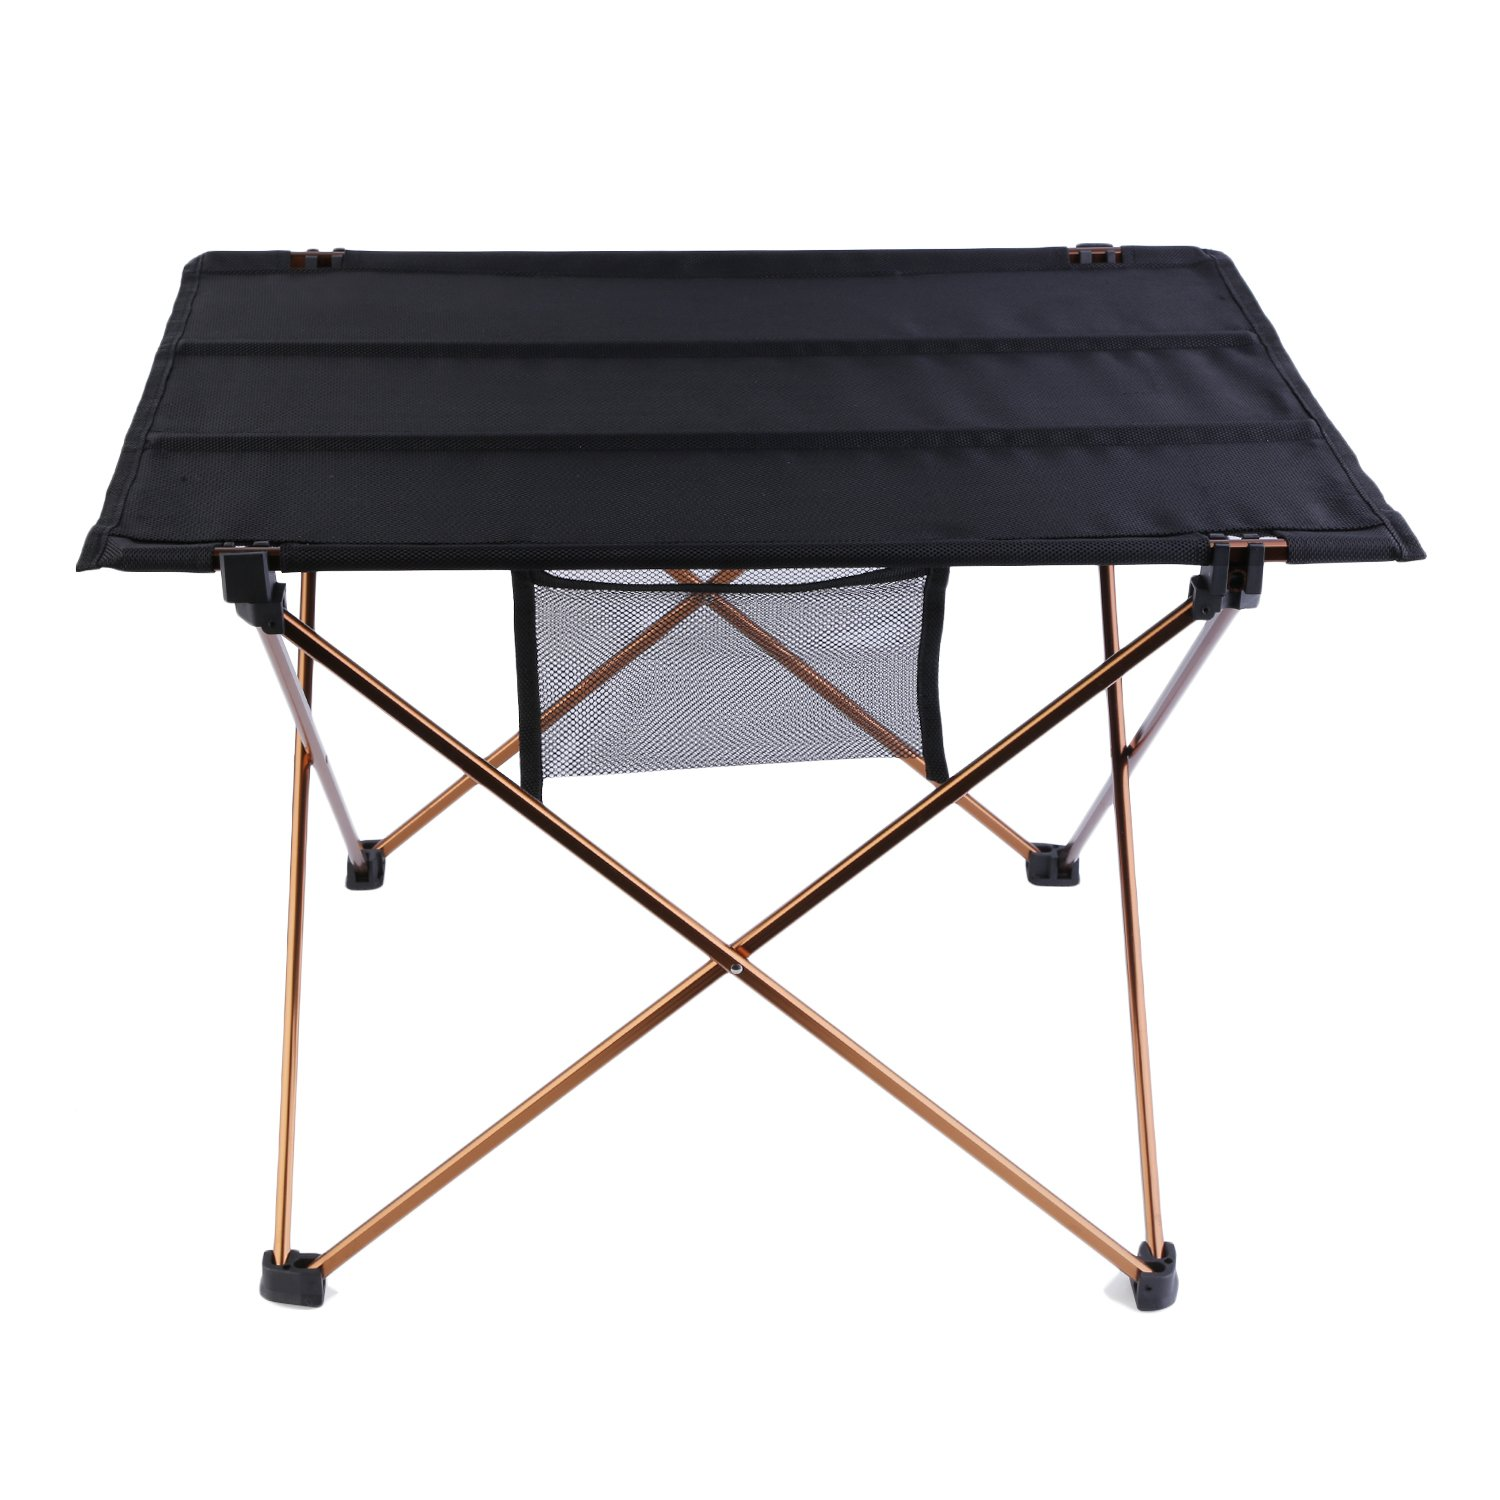 Table in a bag amazon trekology portable camping table for Dining table weight